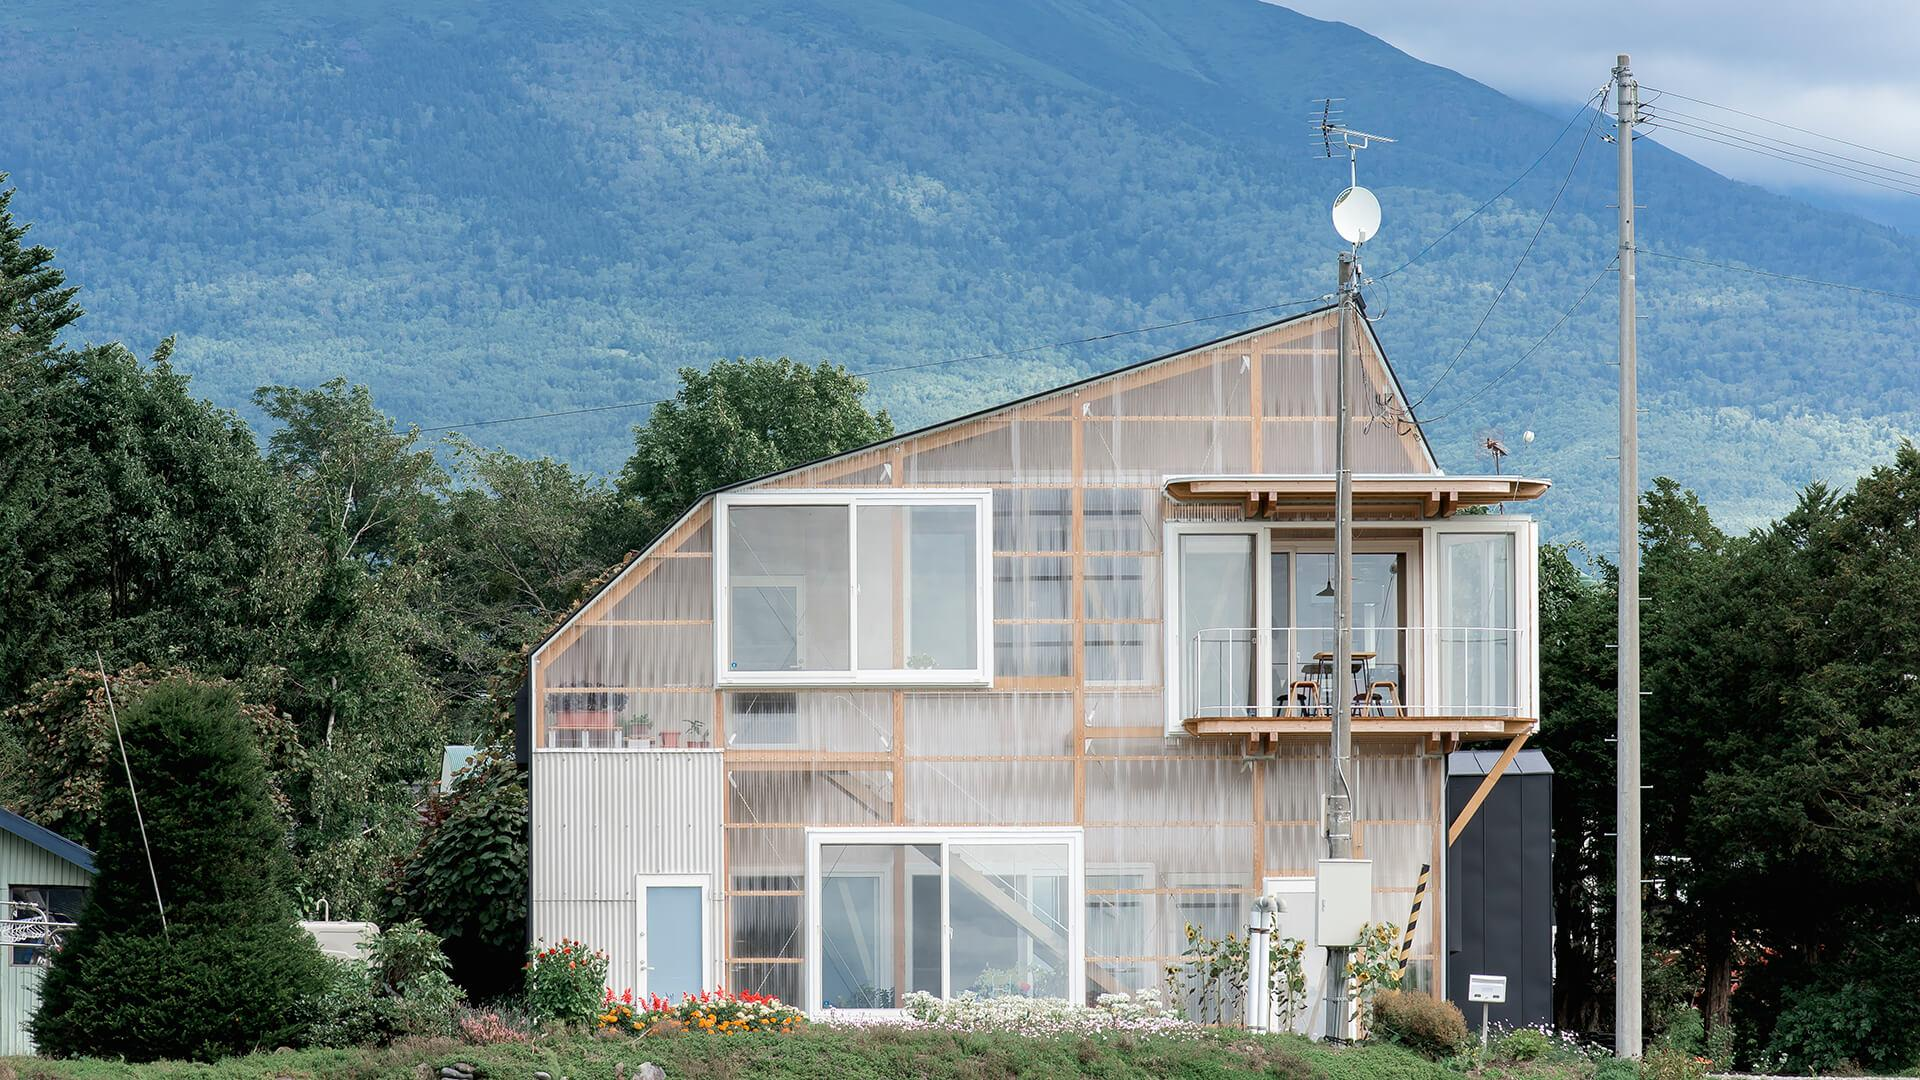 FRAME         | This translucent two-generation home in rural Japan was inspired by greenhouses